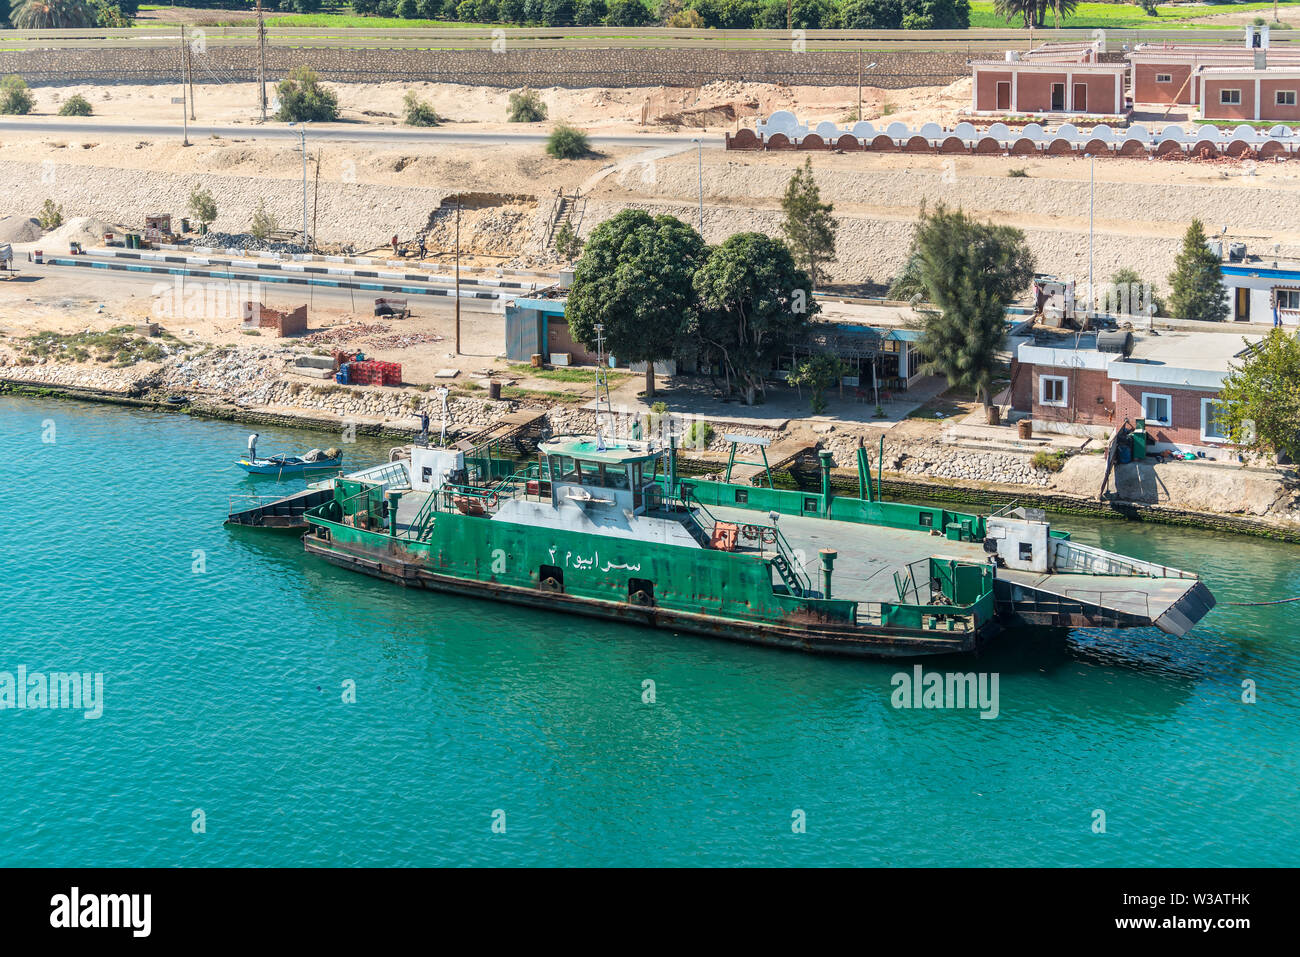 Ismailia, Egypt - November 5, 2017: Sarabum Ferryboat moored to the shore on the Suez Canal near Ismailia, Egypt. - Stock Image